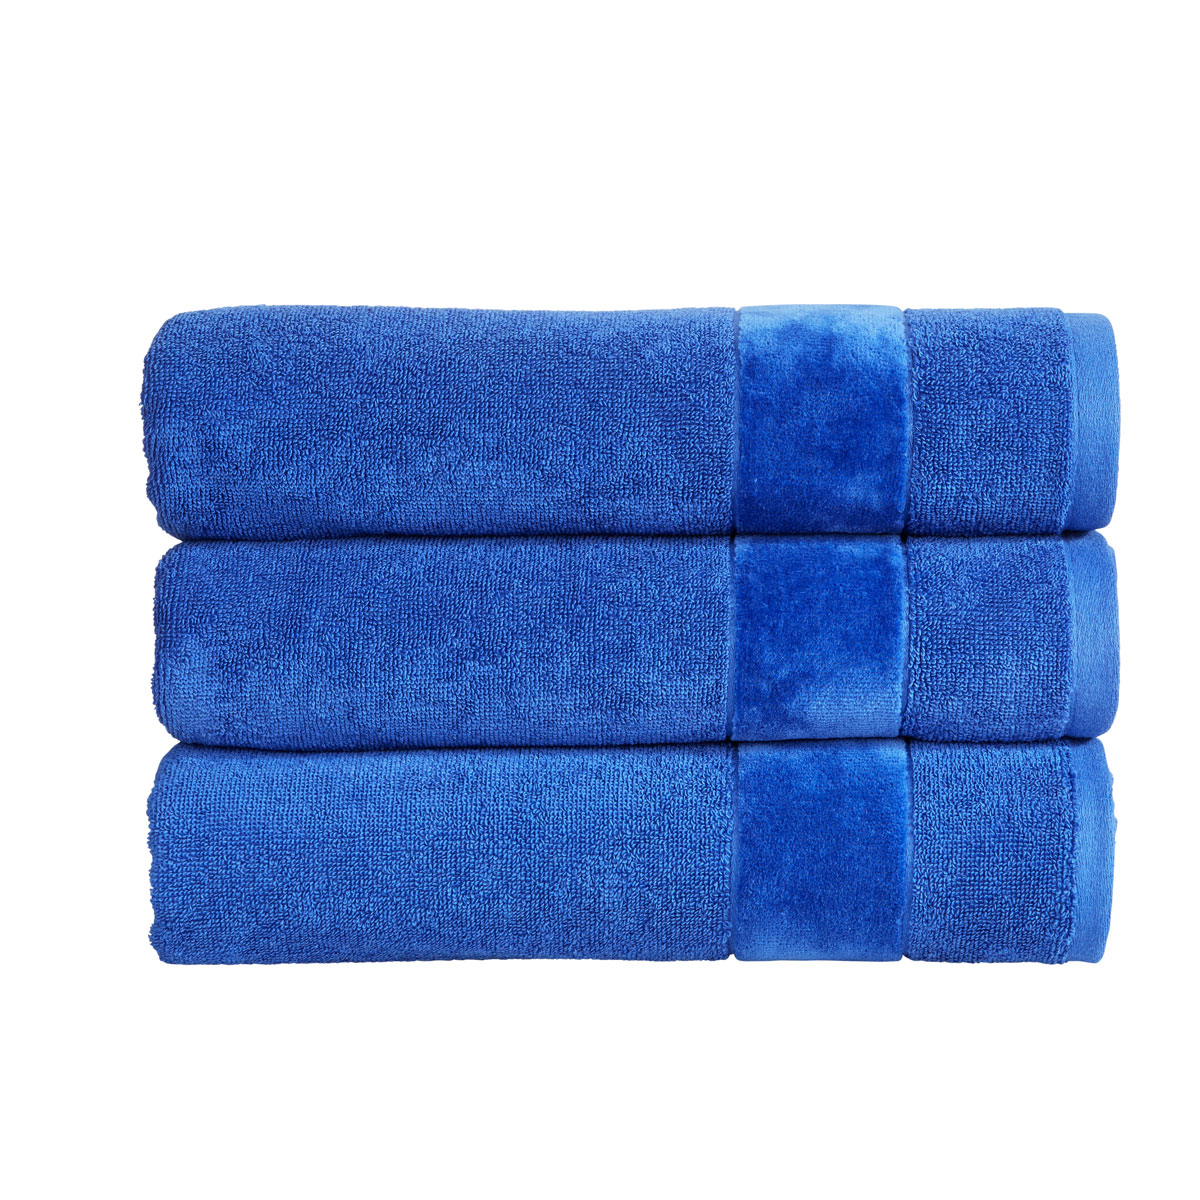 Christy Prism Towels Blue Velvet Christy